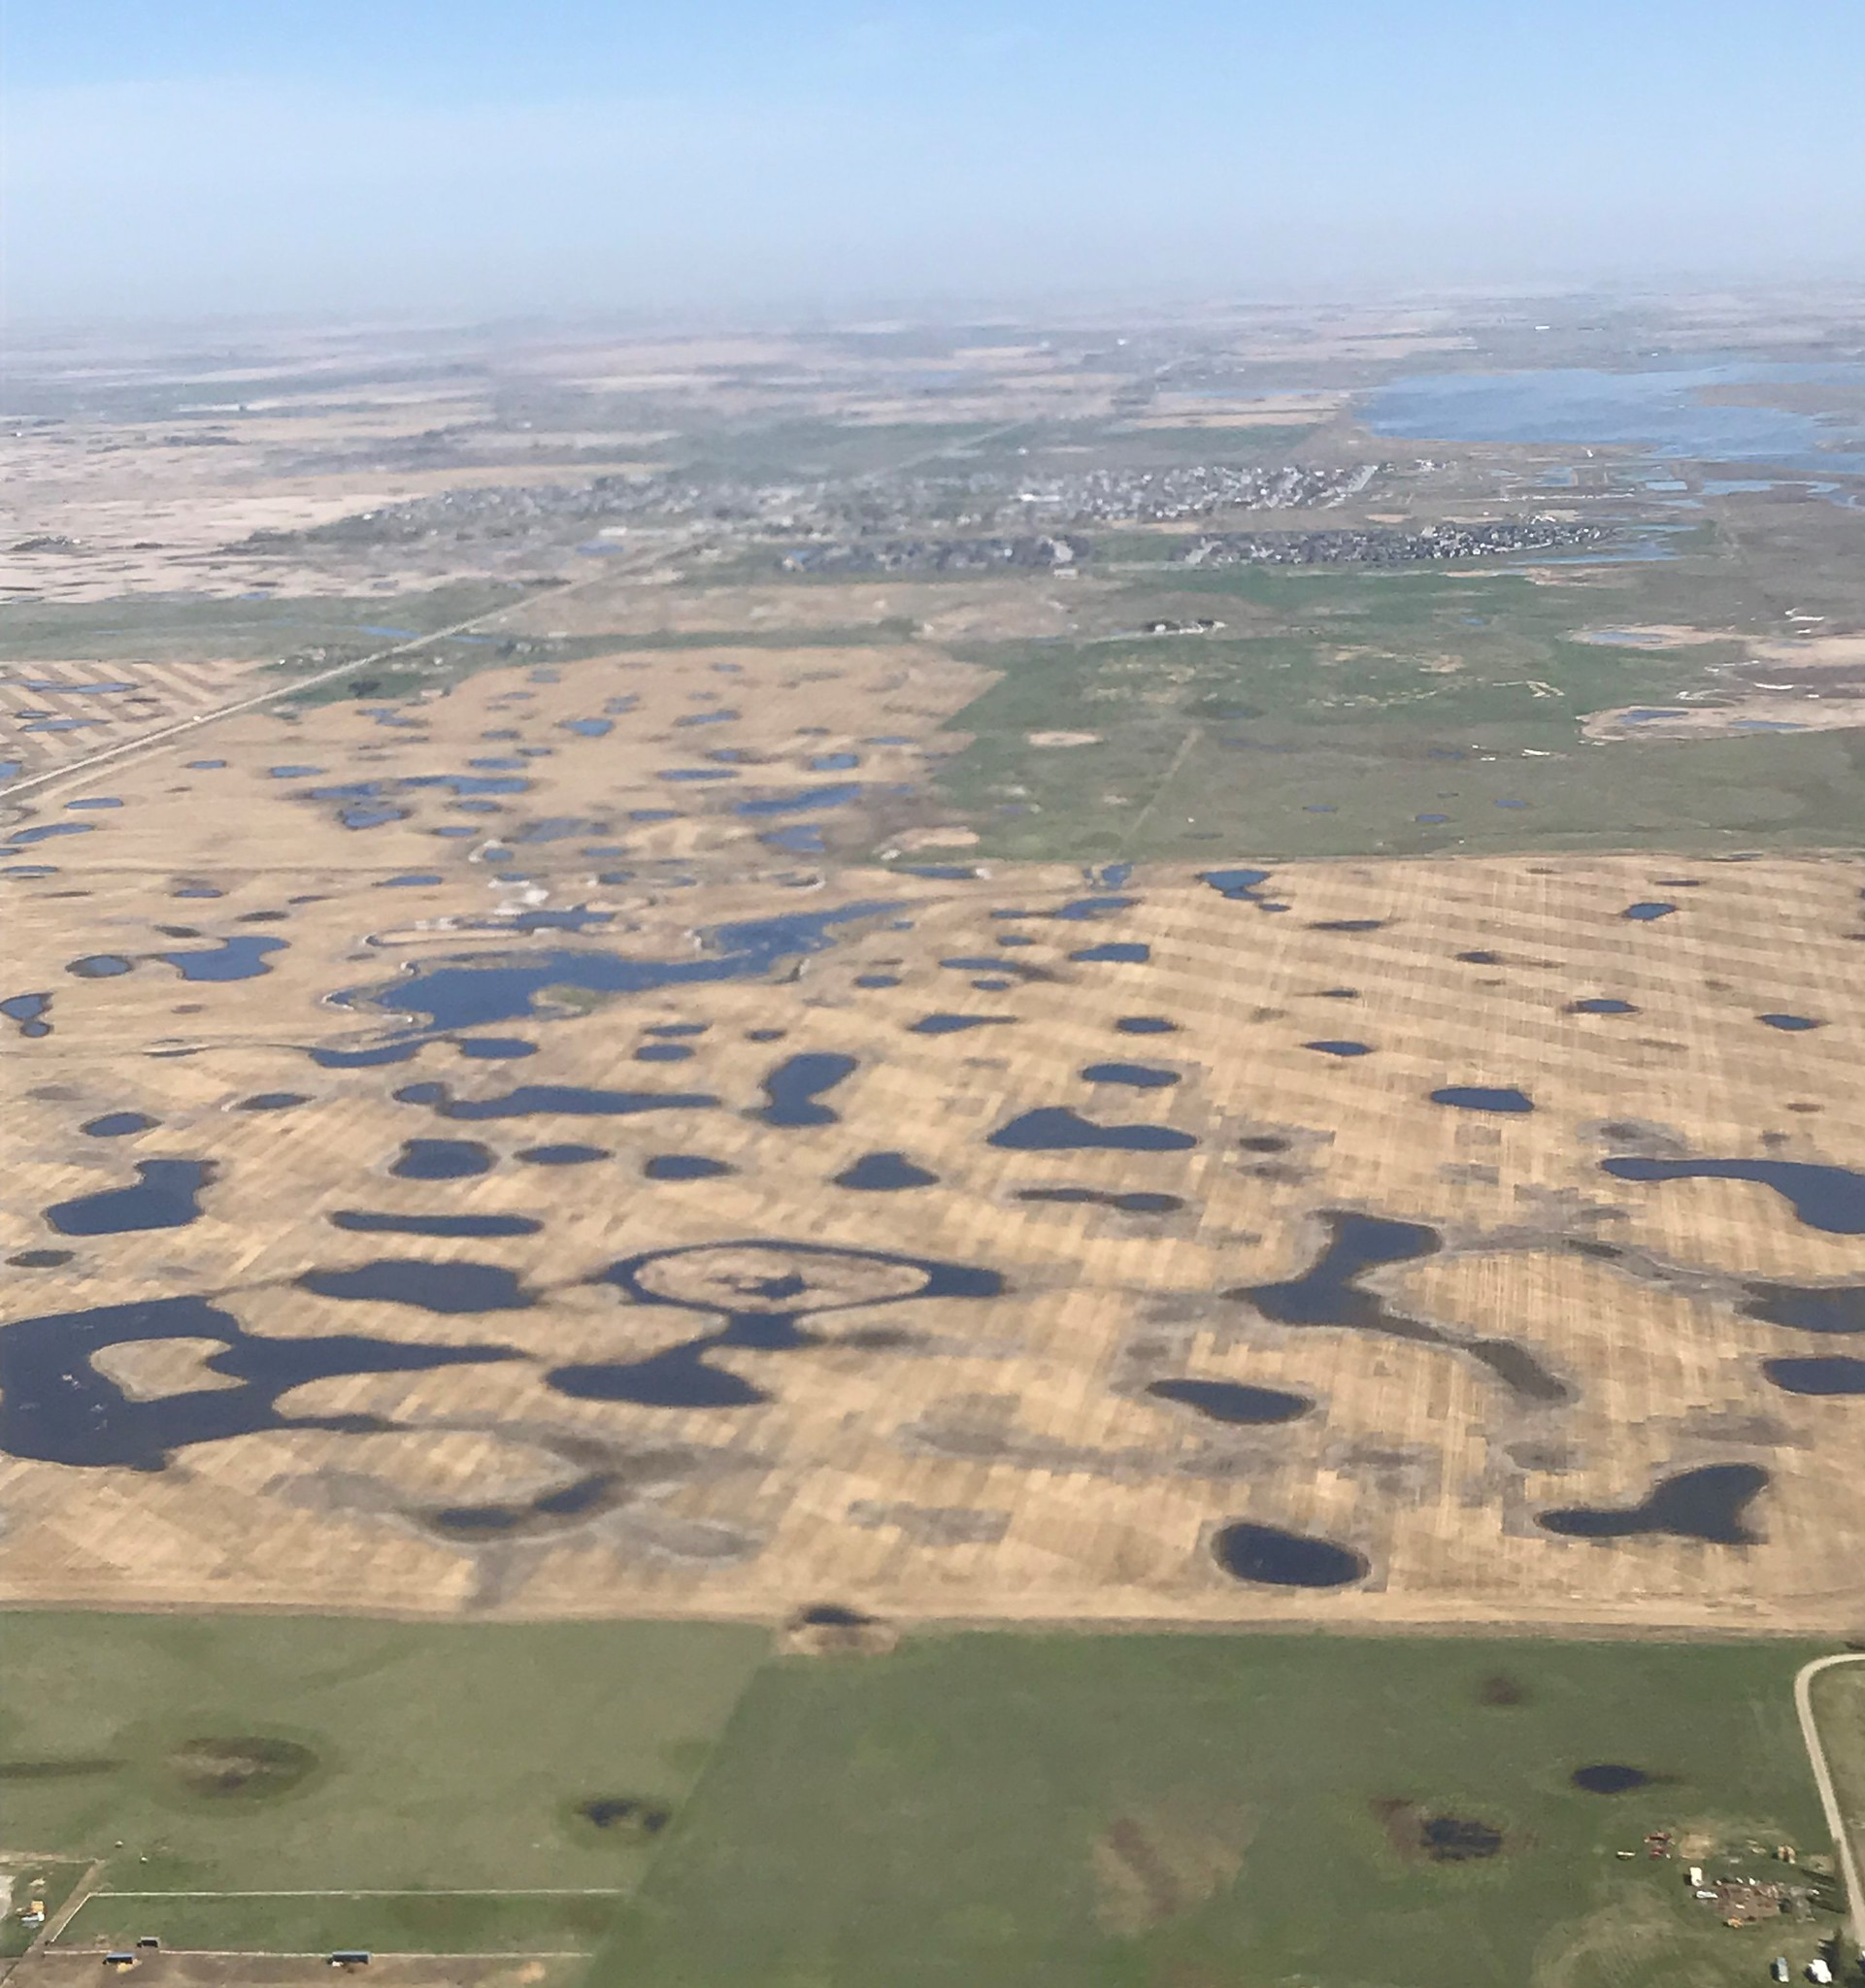 Most of the wetland basins 10 miles west of Calgary, Alberta, have water in them, with many of the basins full. (USF&WS photo by Jim Bredy)